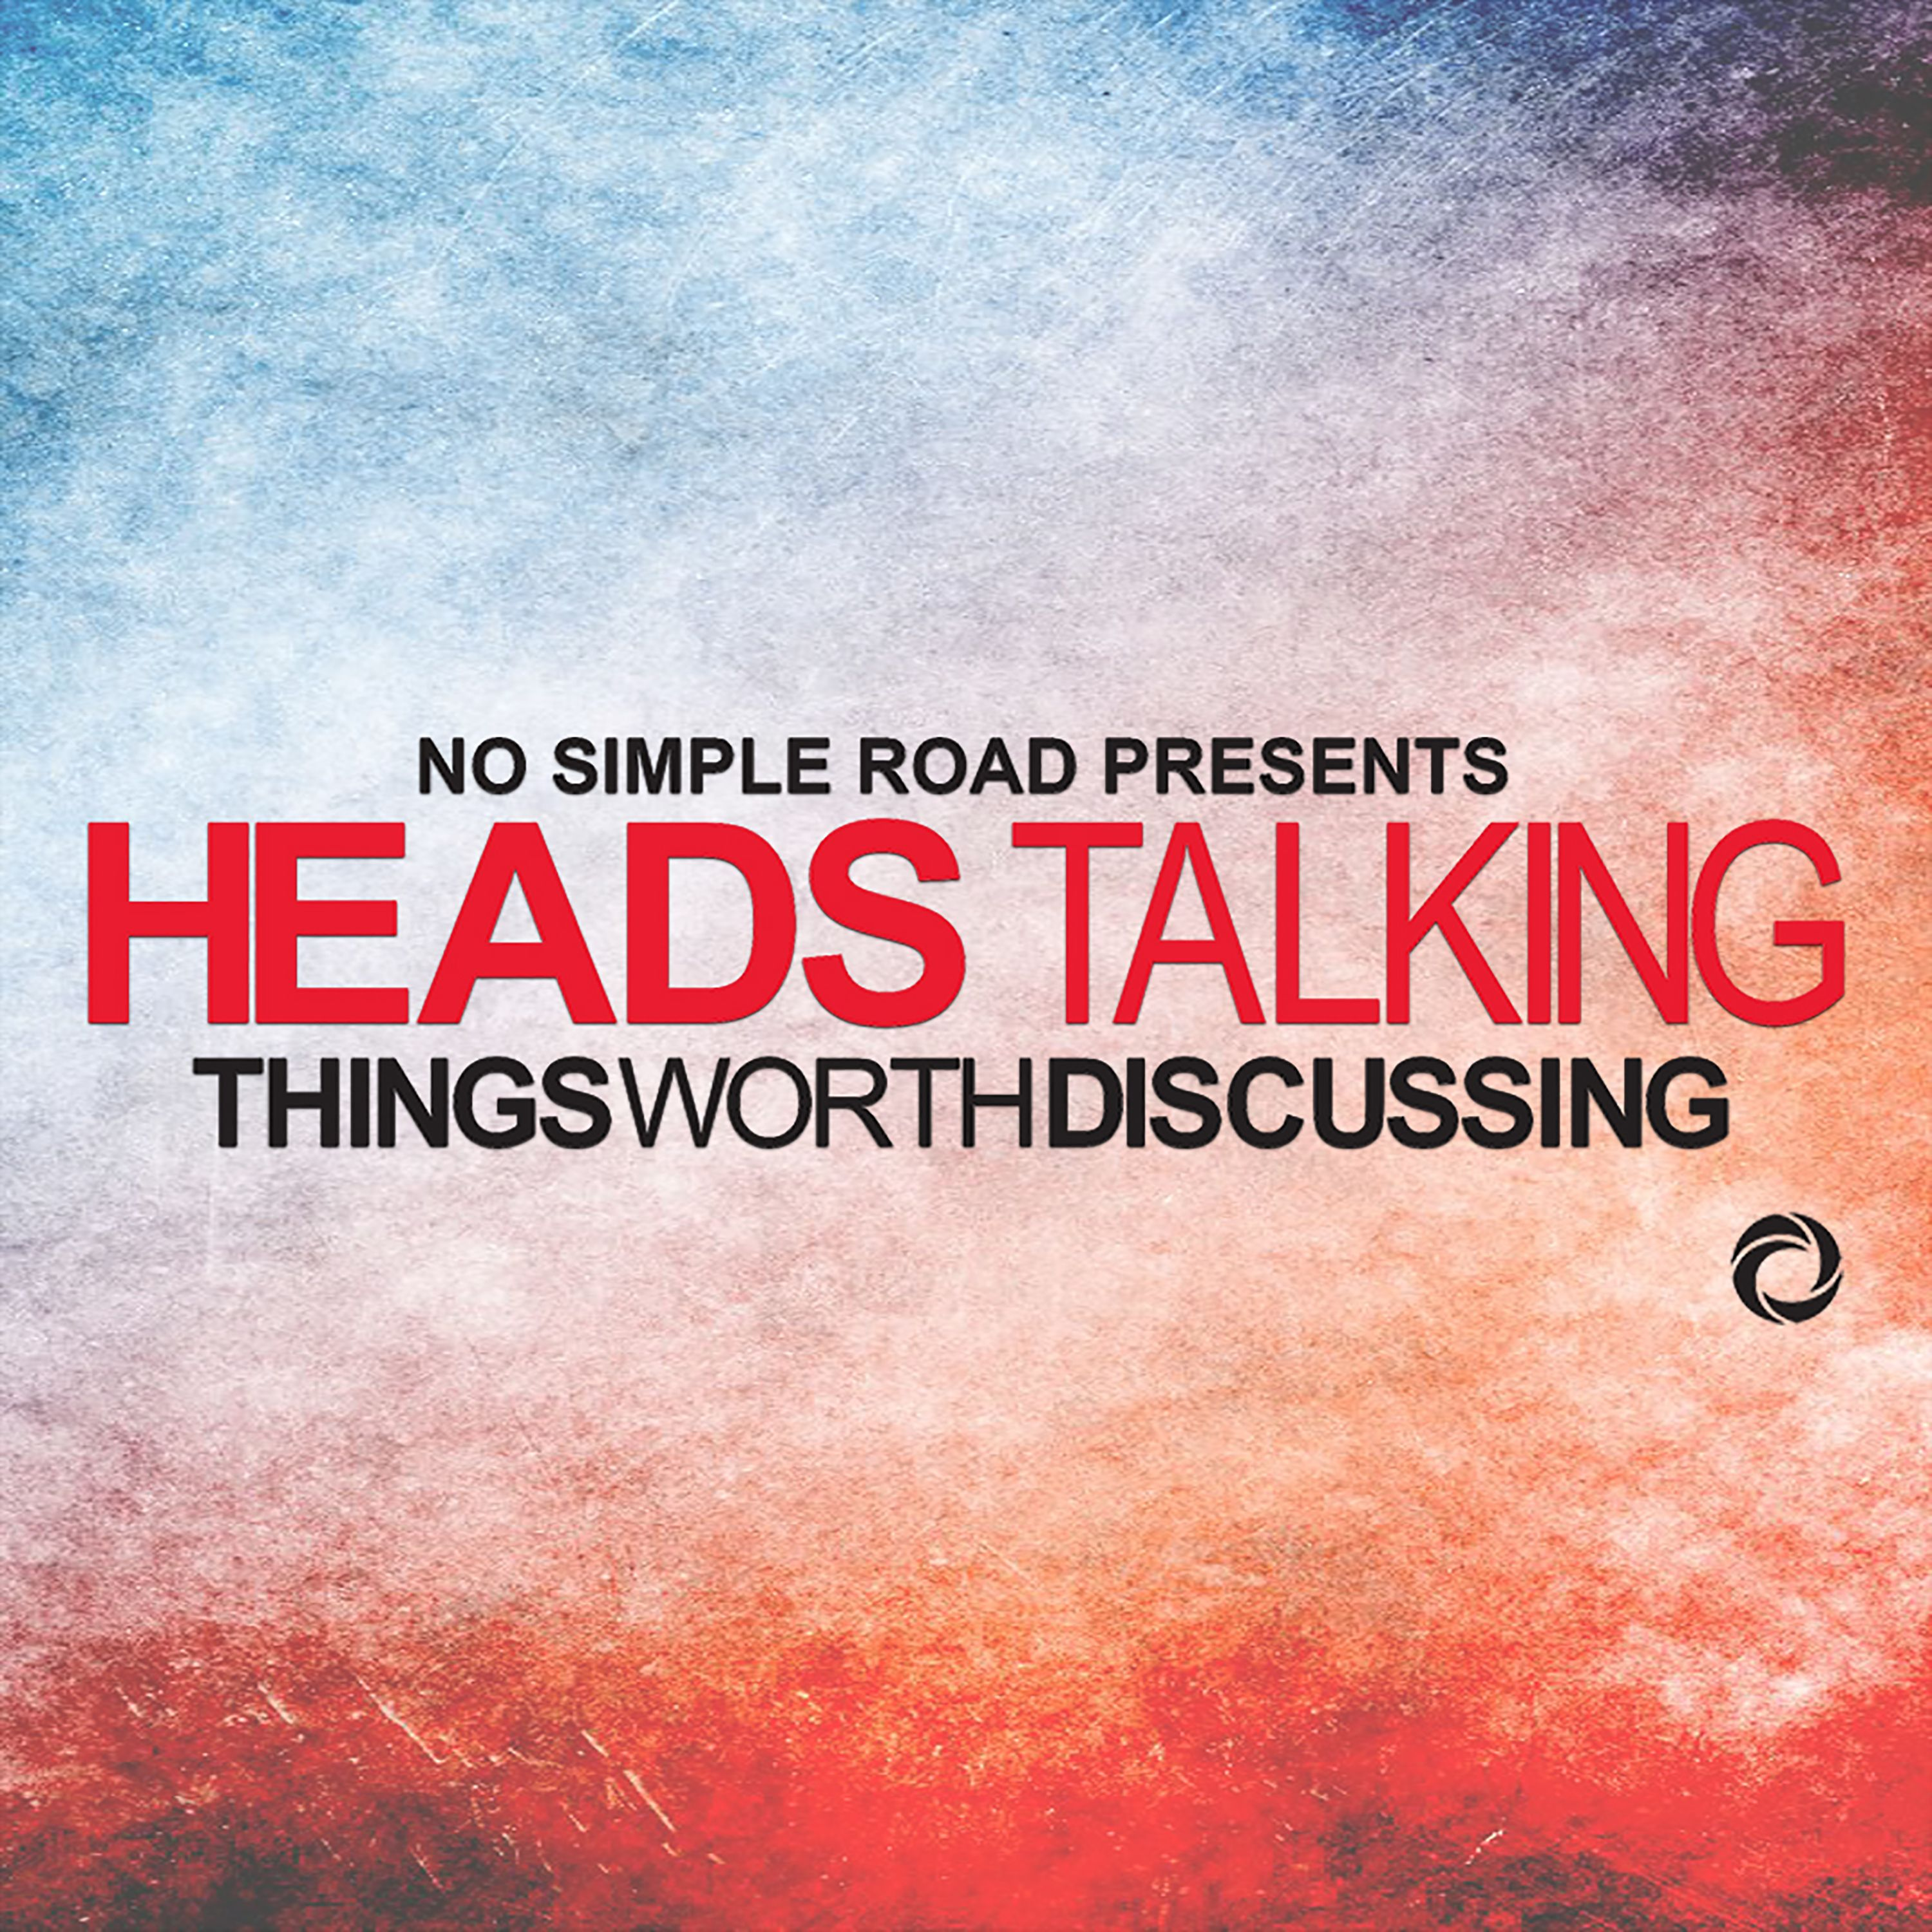 Heads Talking - A Little Herb and Lovingkindness